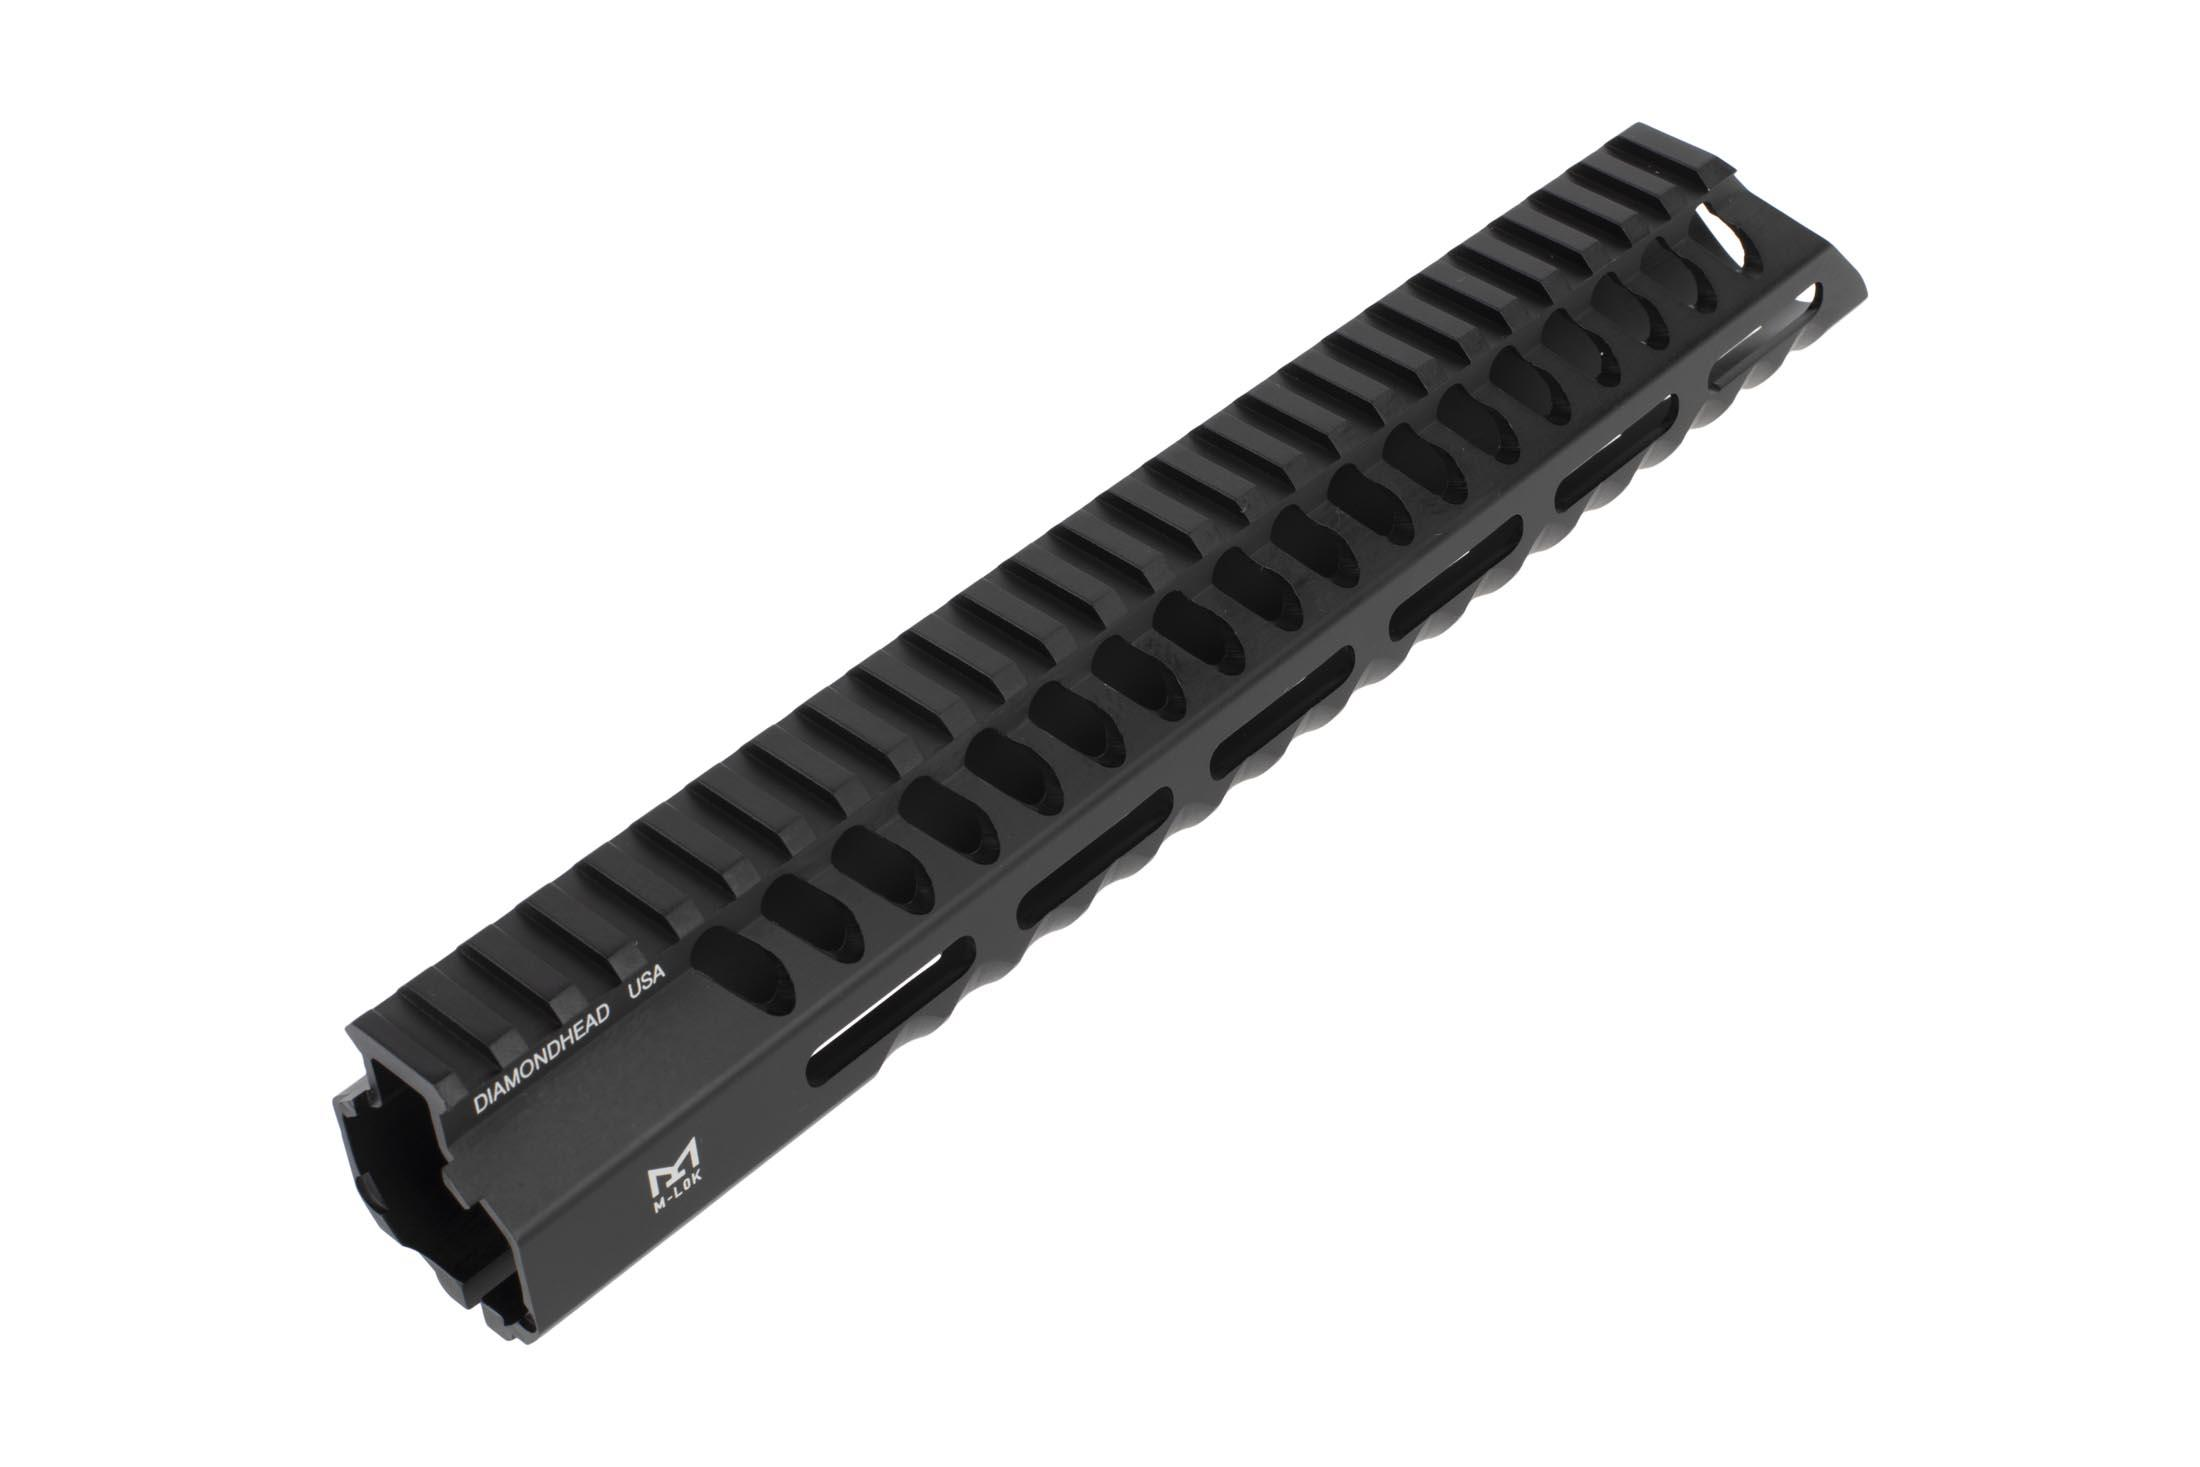 Diamondhead USA Series 3 VRS-T free float 10.25in AR15 handguard features anti-rotation tabs and M-LOK compatibility